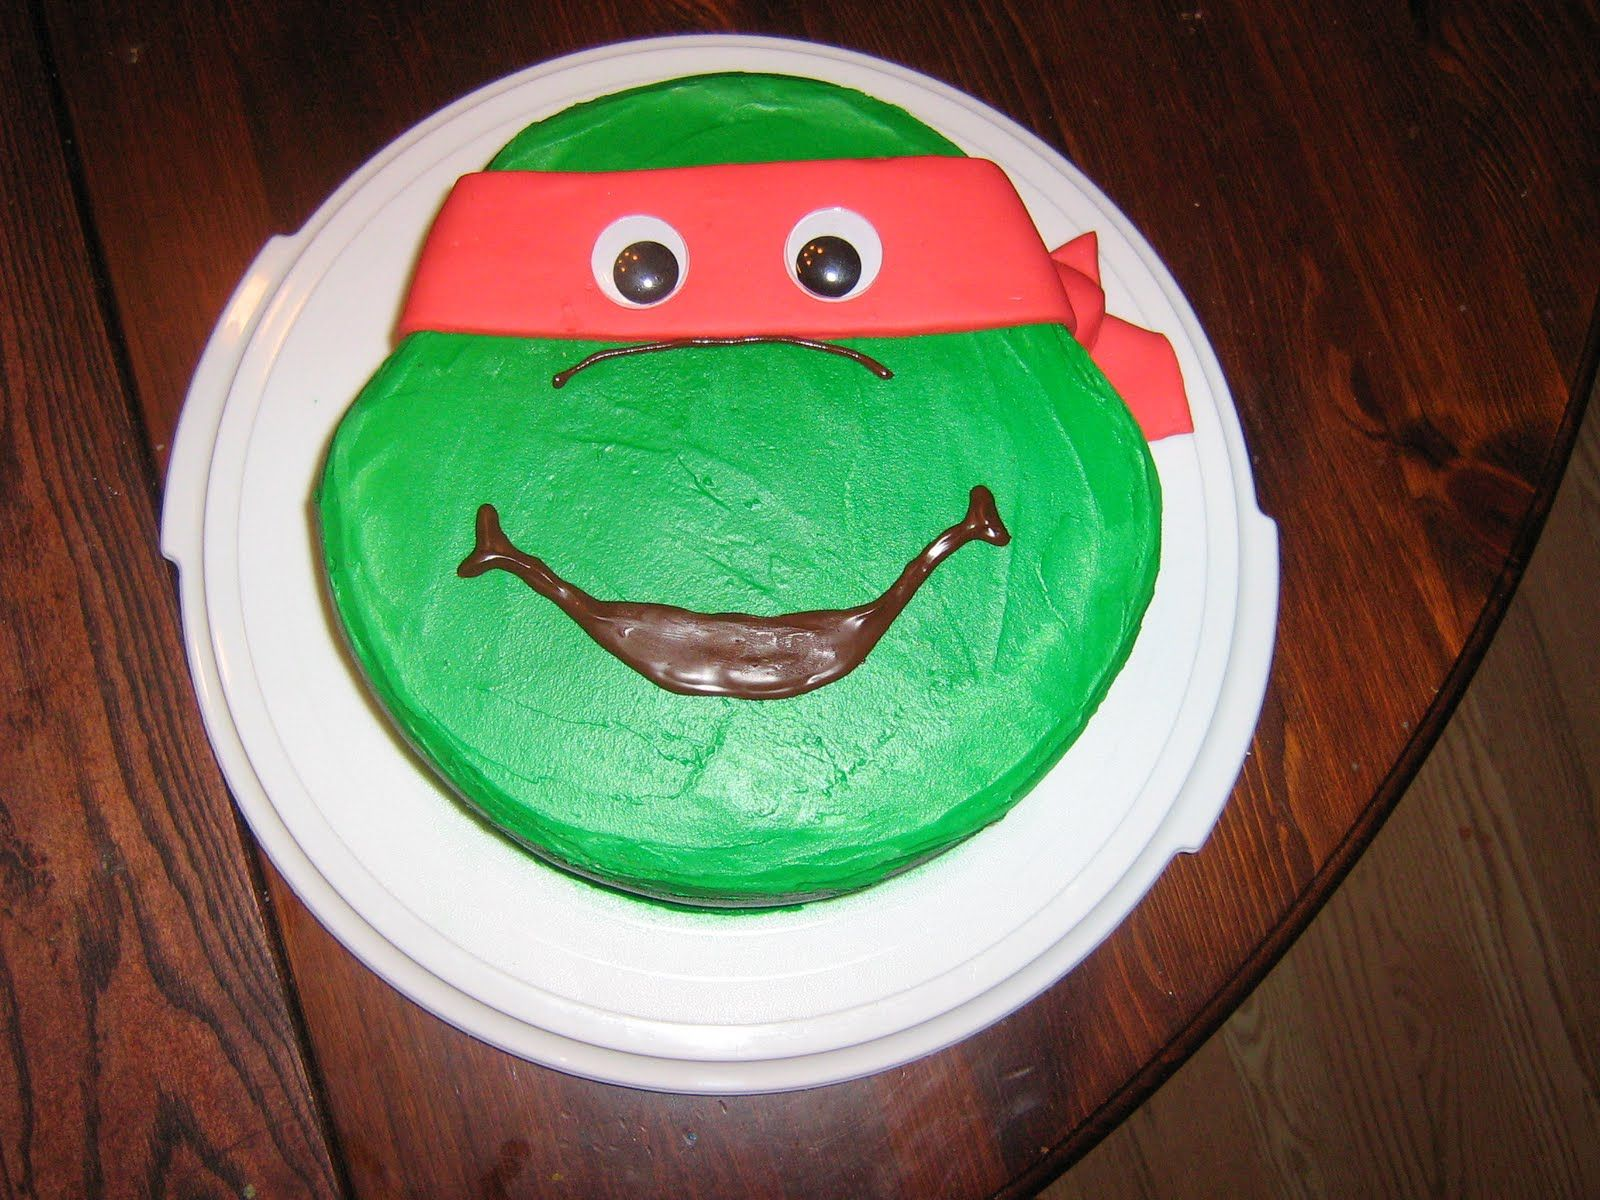 Raphael cake looks pretty simpleTeenage Mutant Ninja Turtles